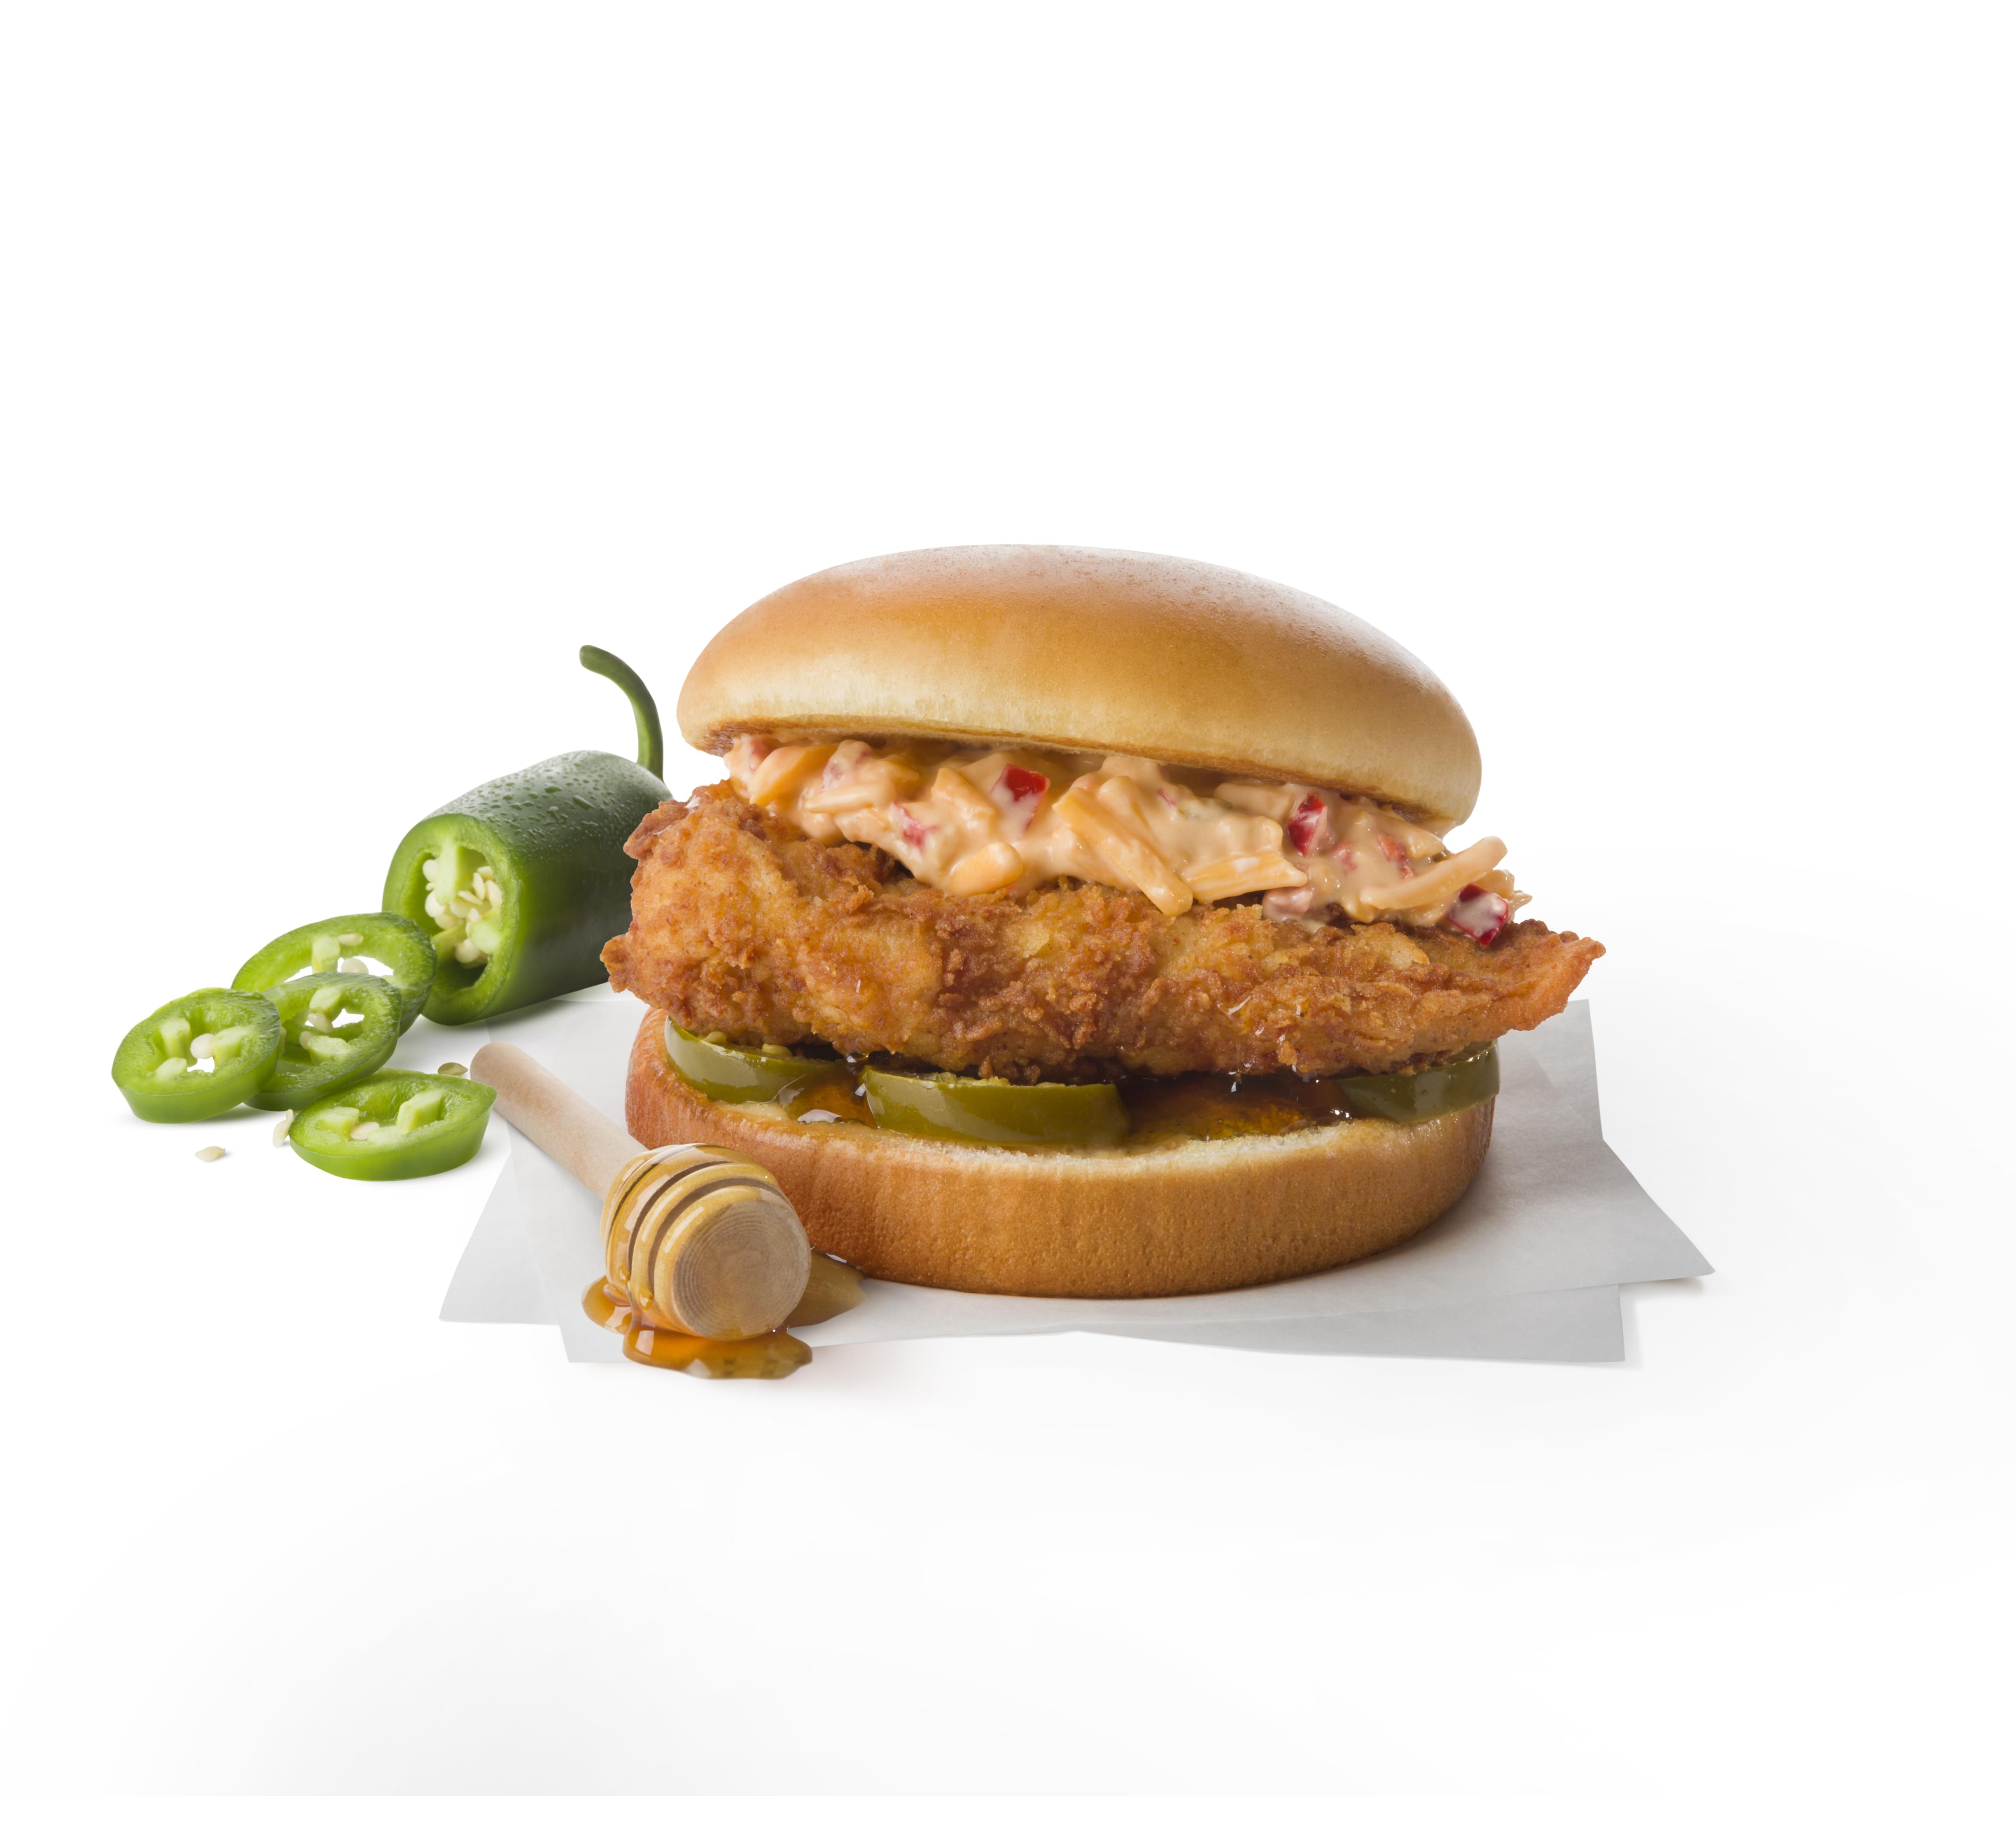 Chick-fil-A Honey Pepper Pimento Chicken Sandwich Nutrition Facts